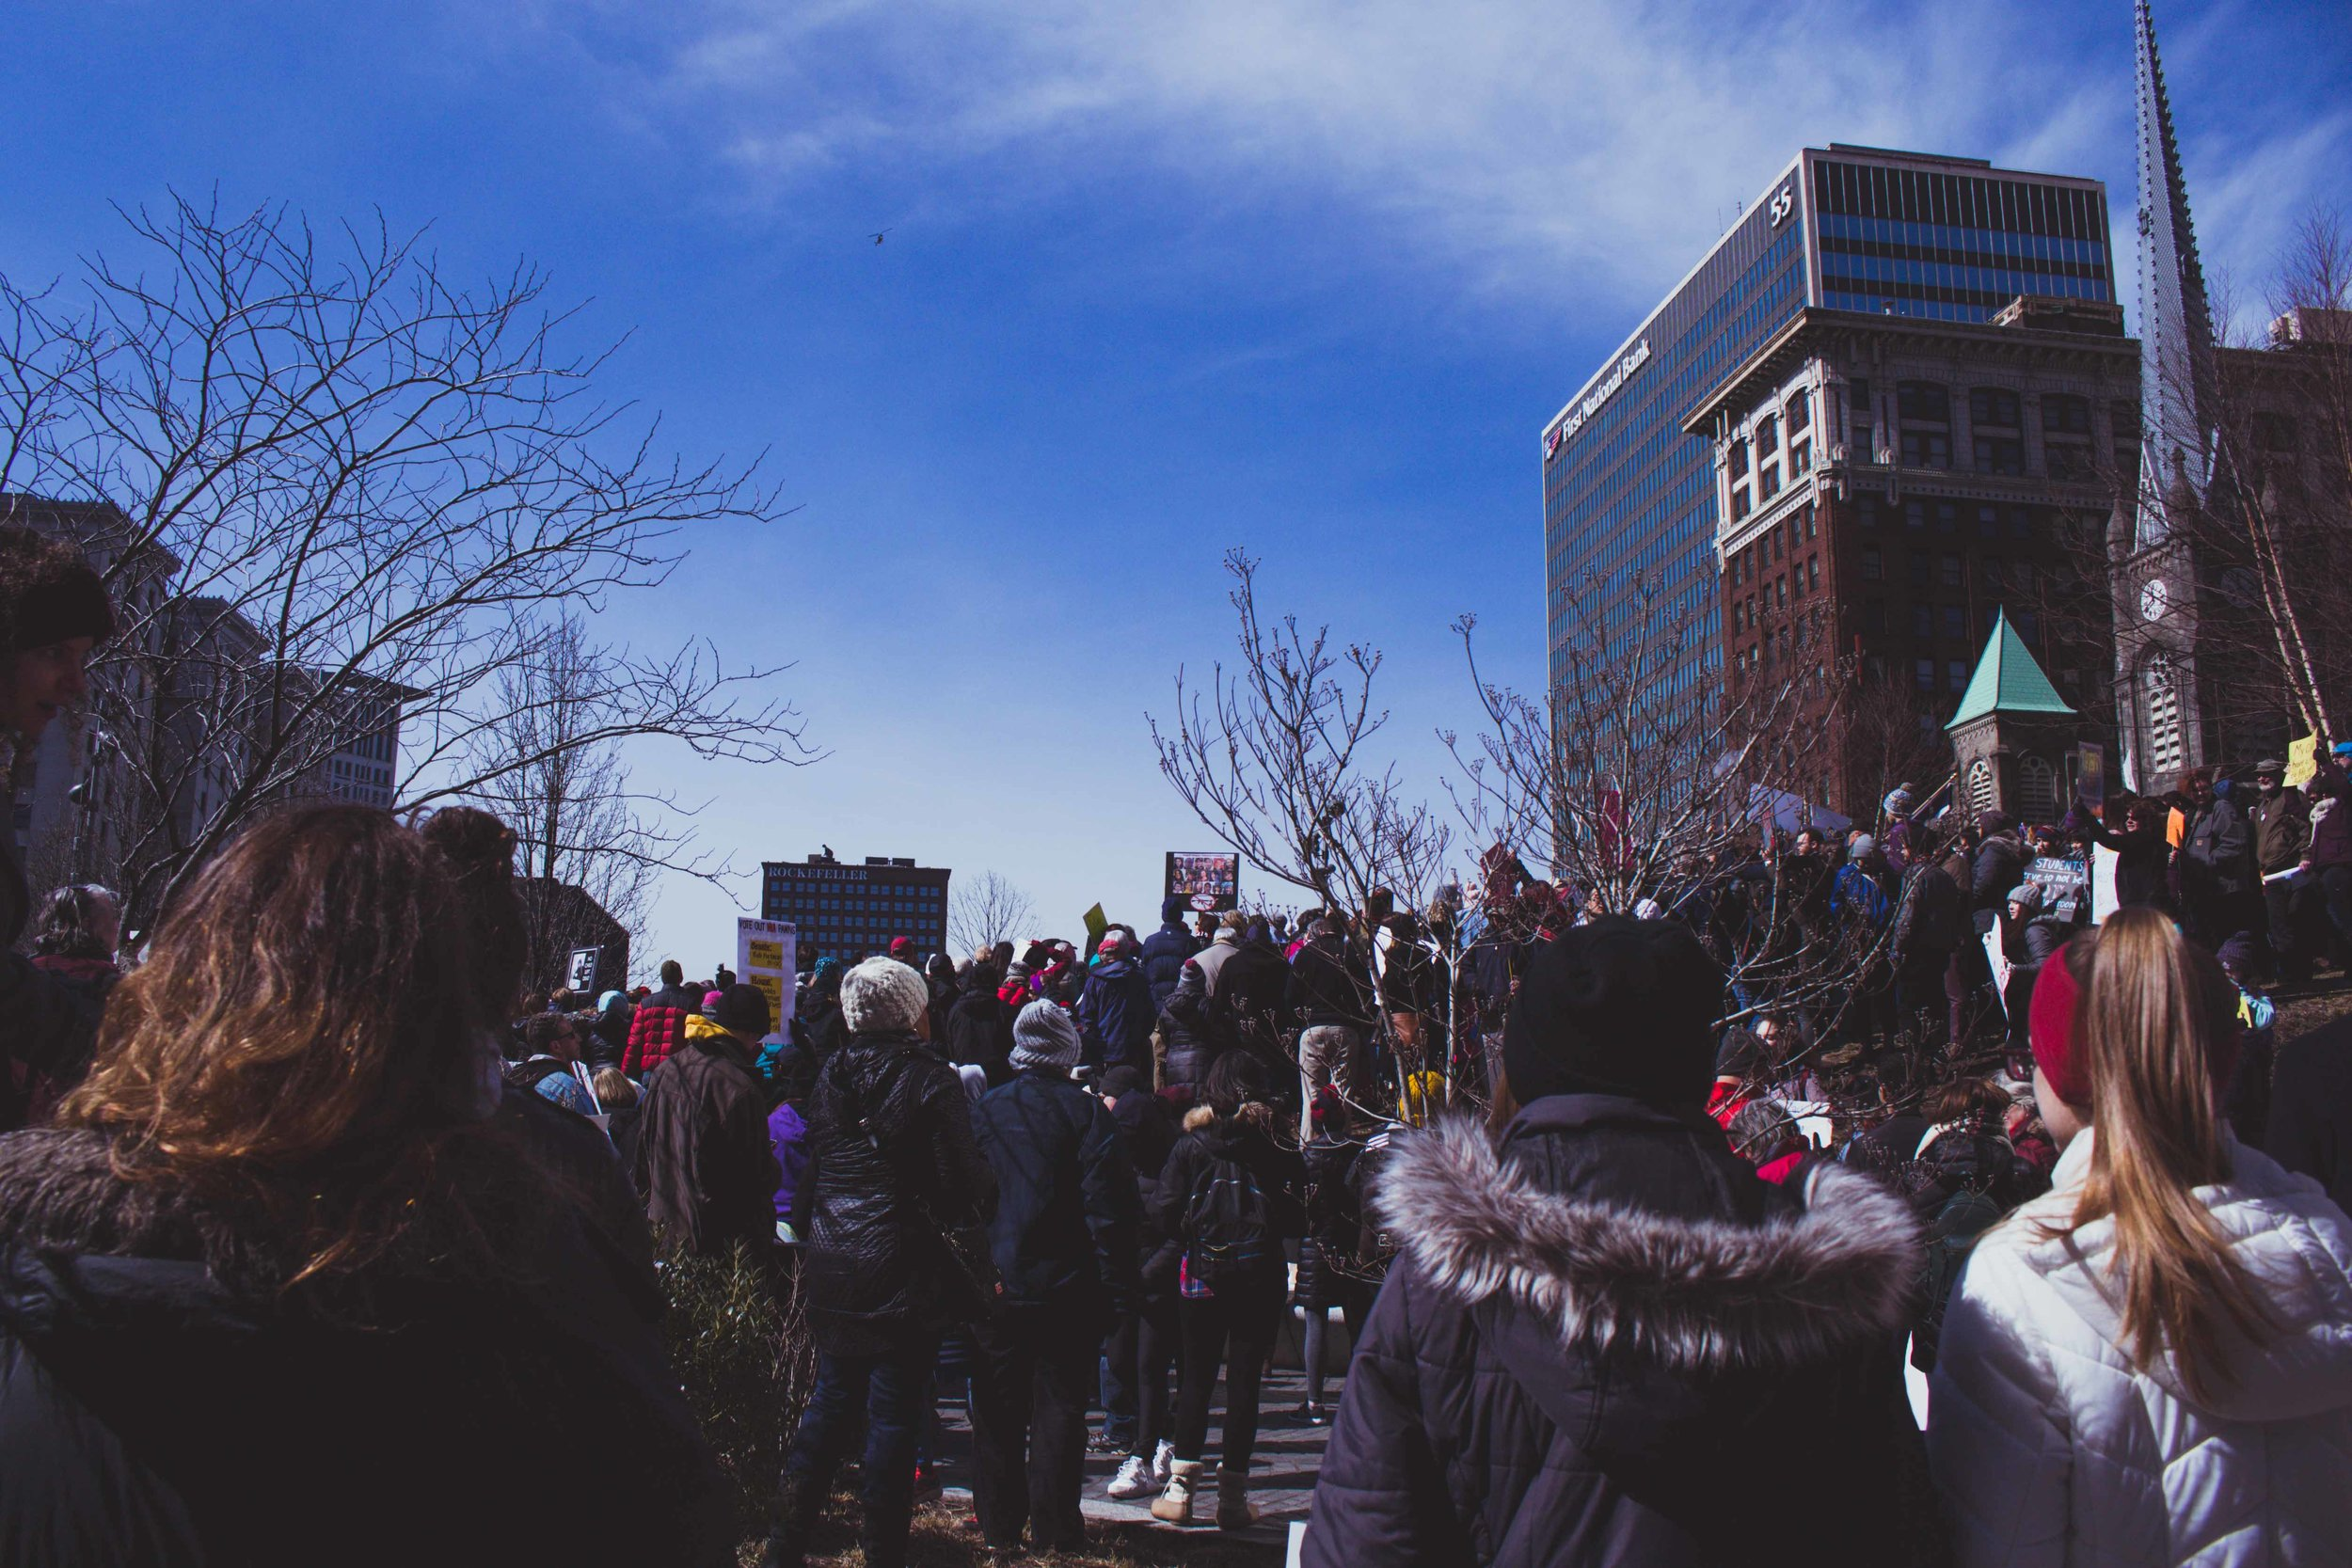 march4ourlives-4.jpg